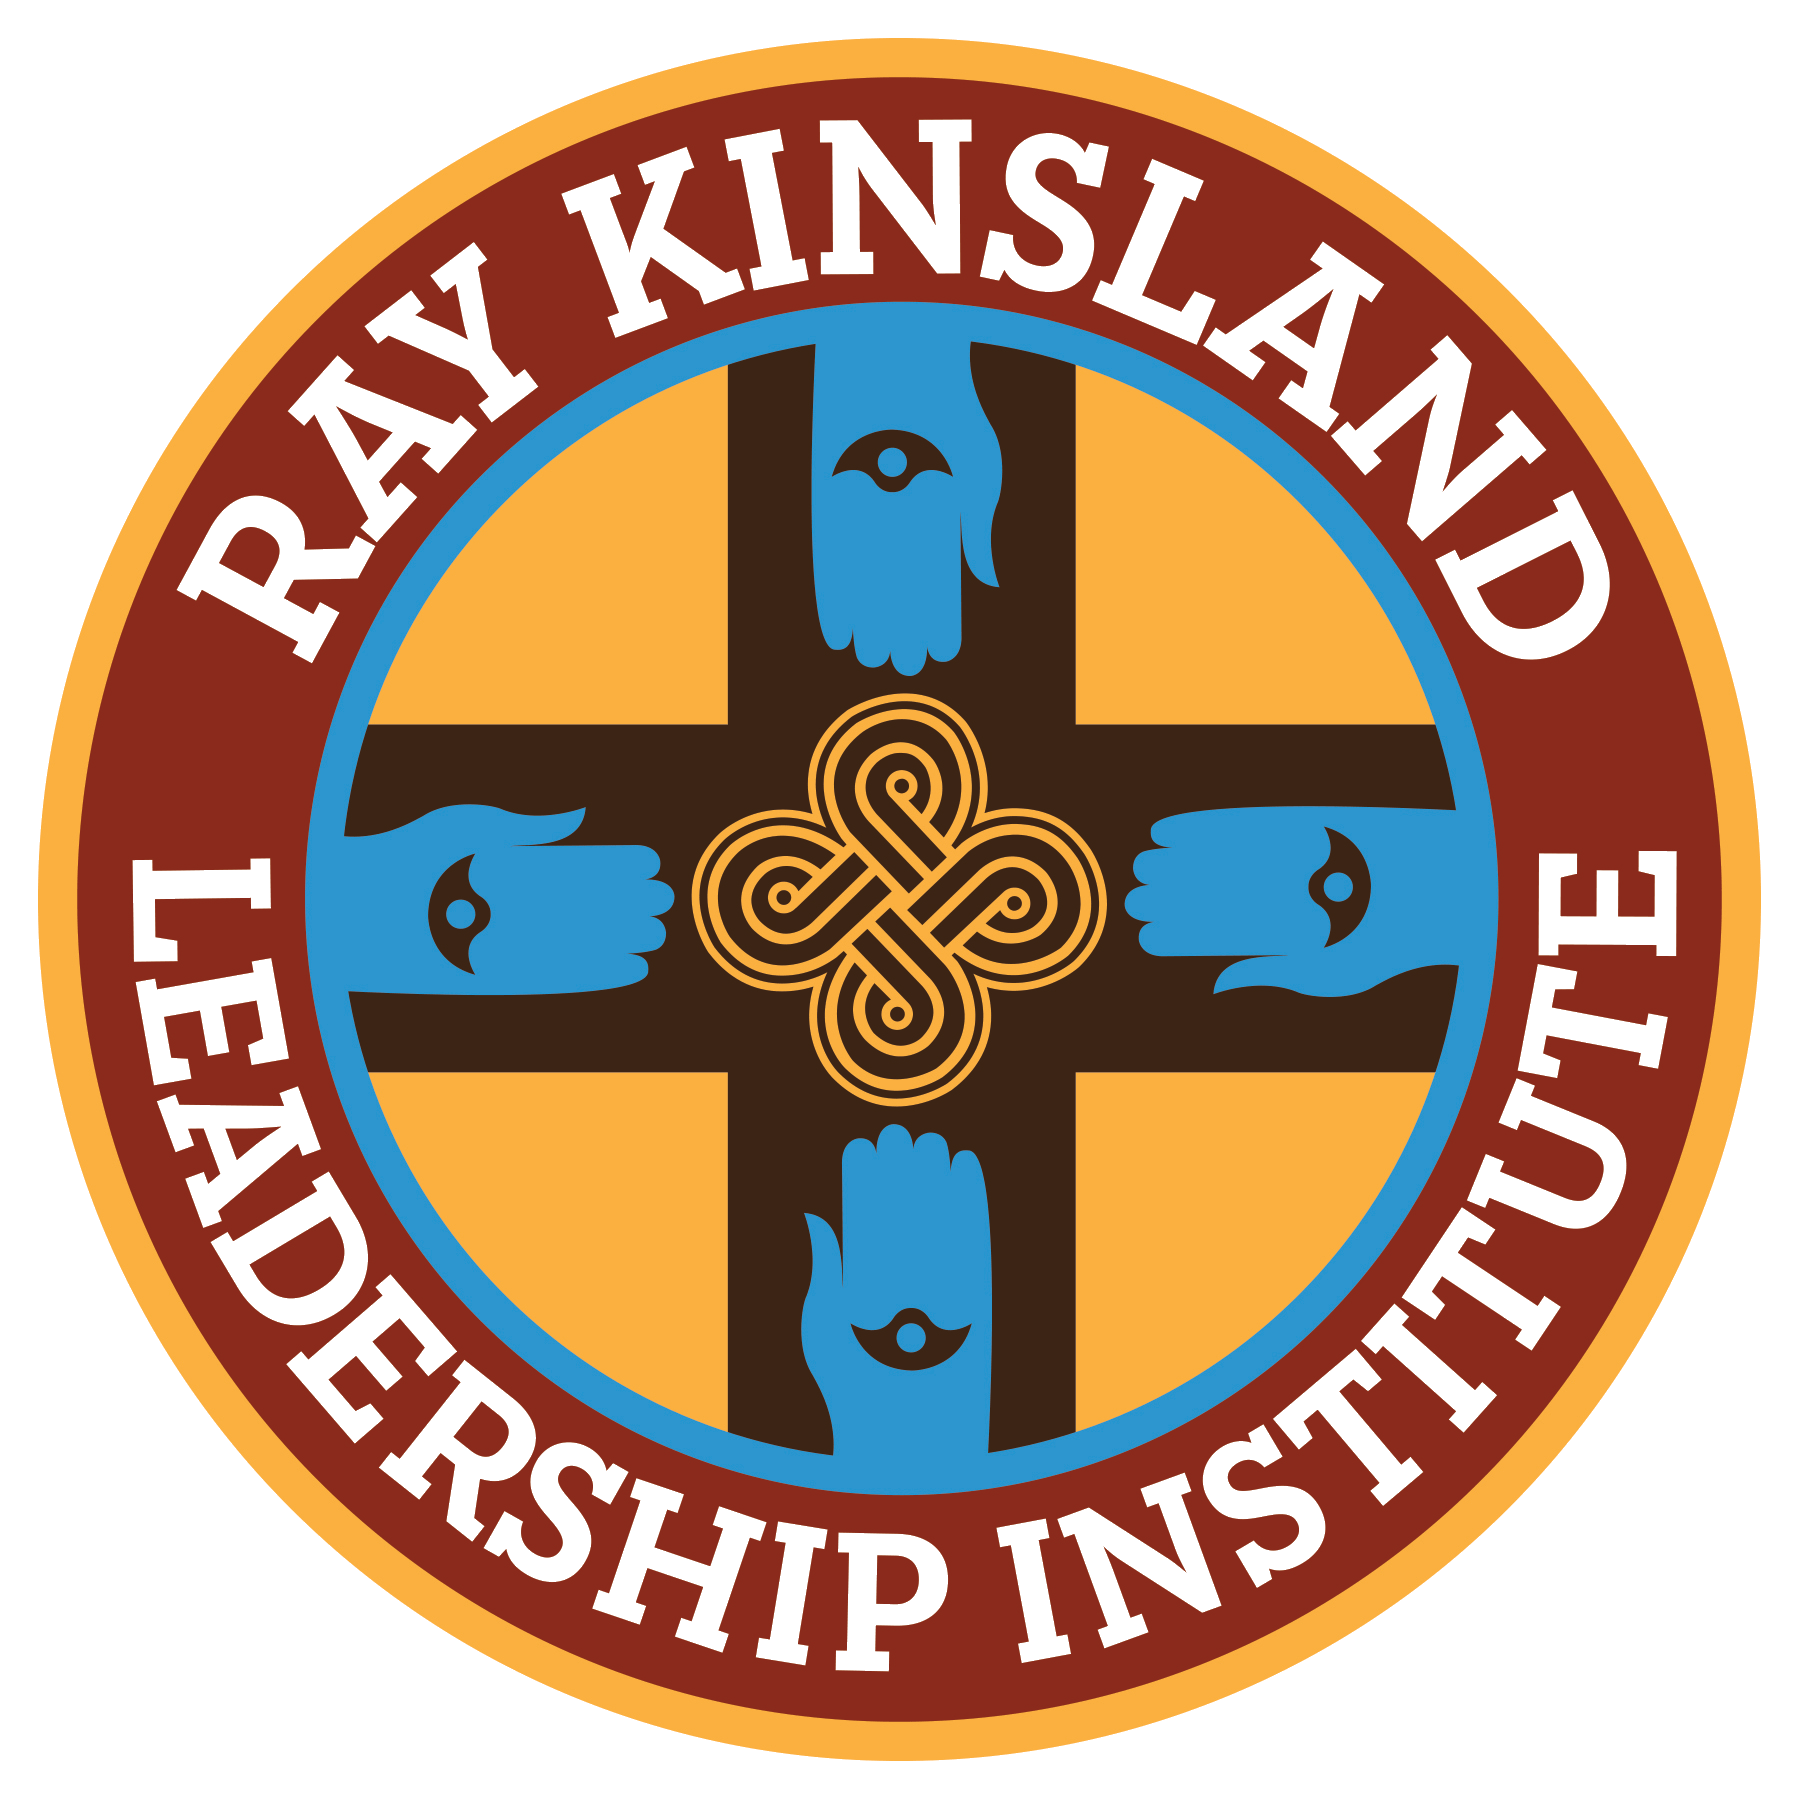 Ray Kinsland Leadership Institute